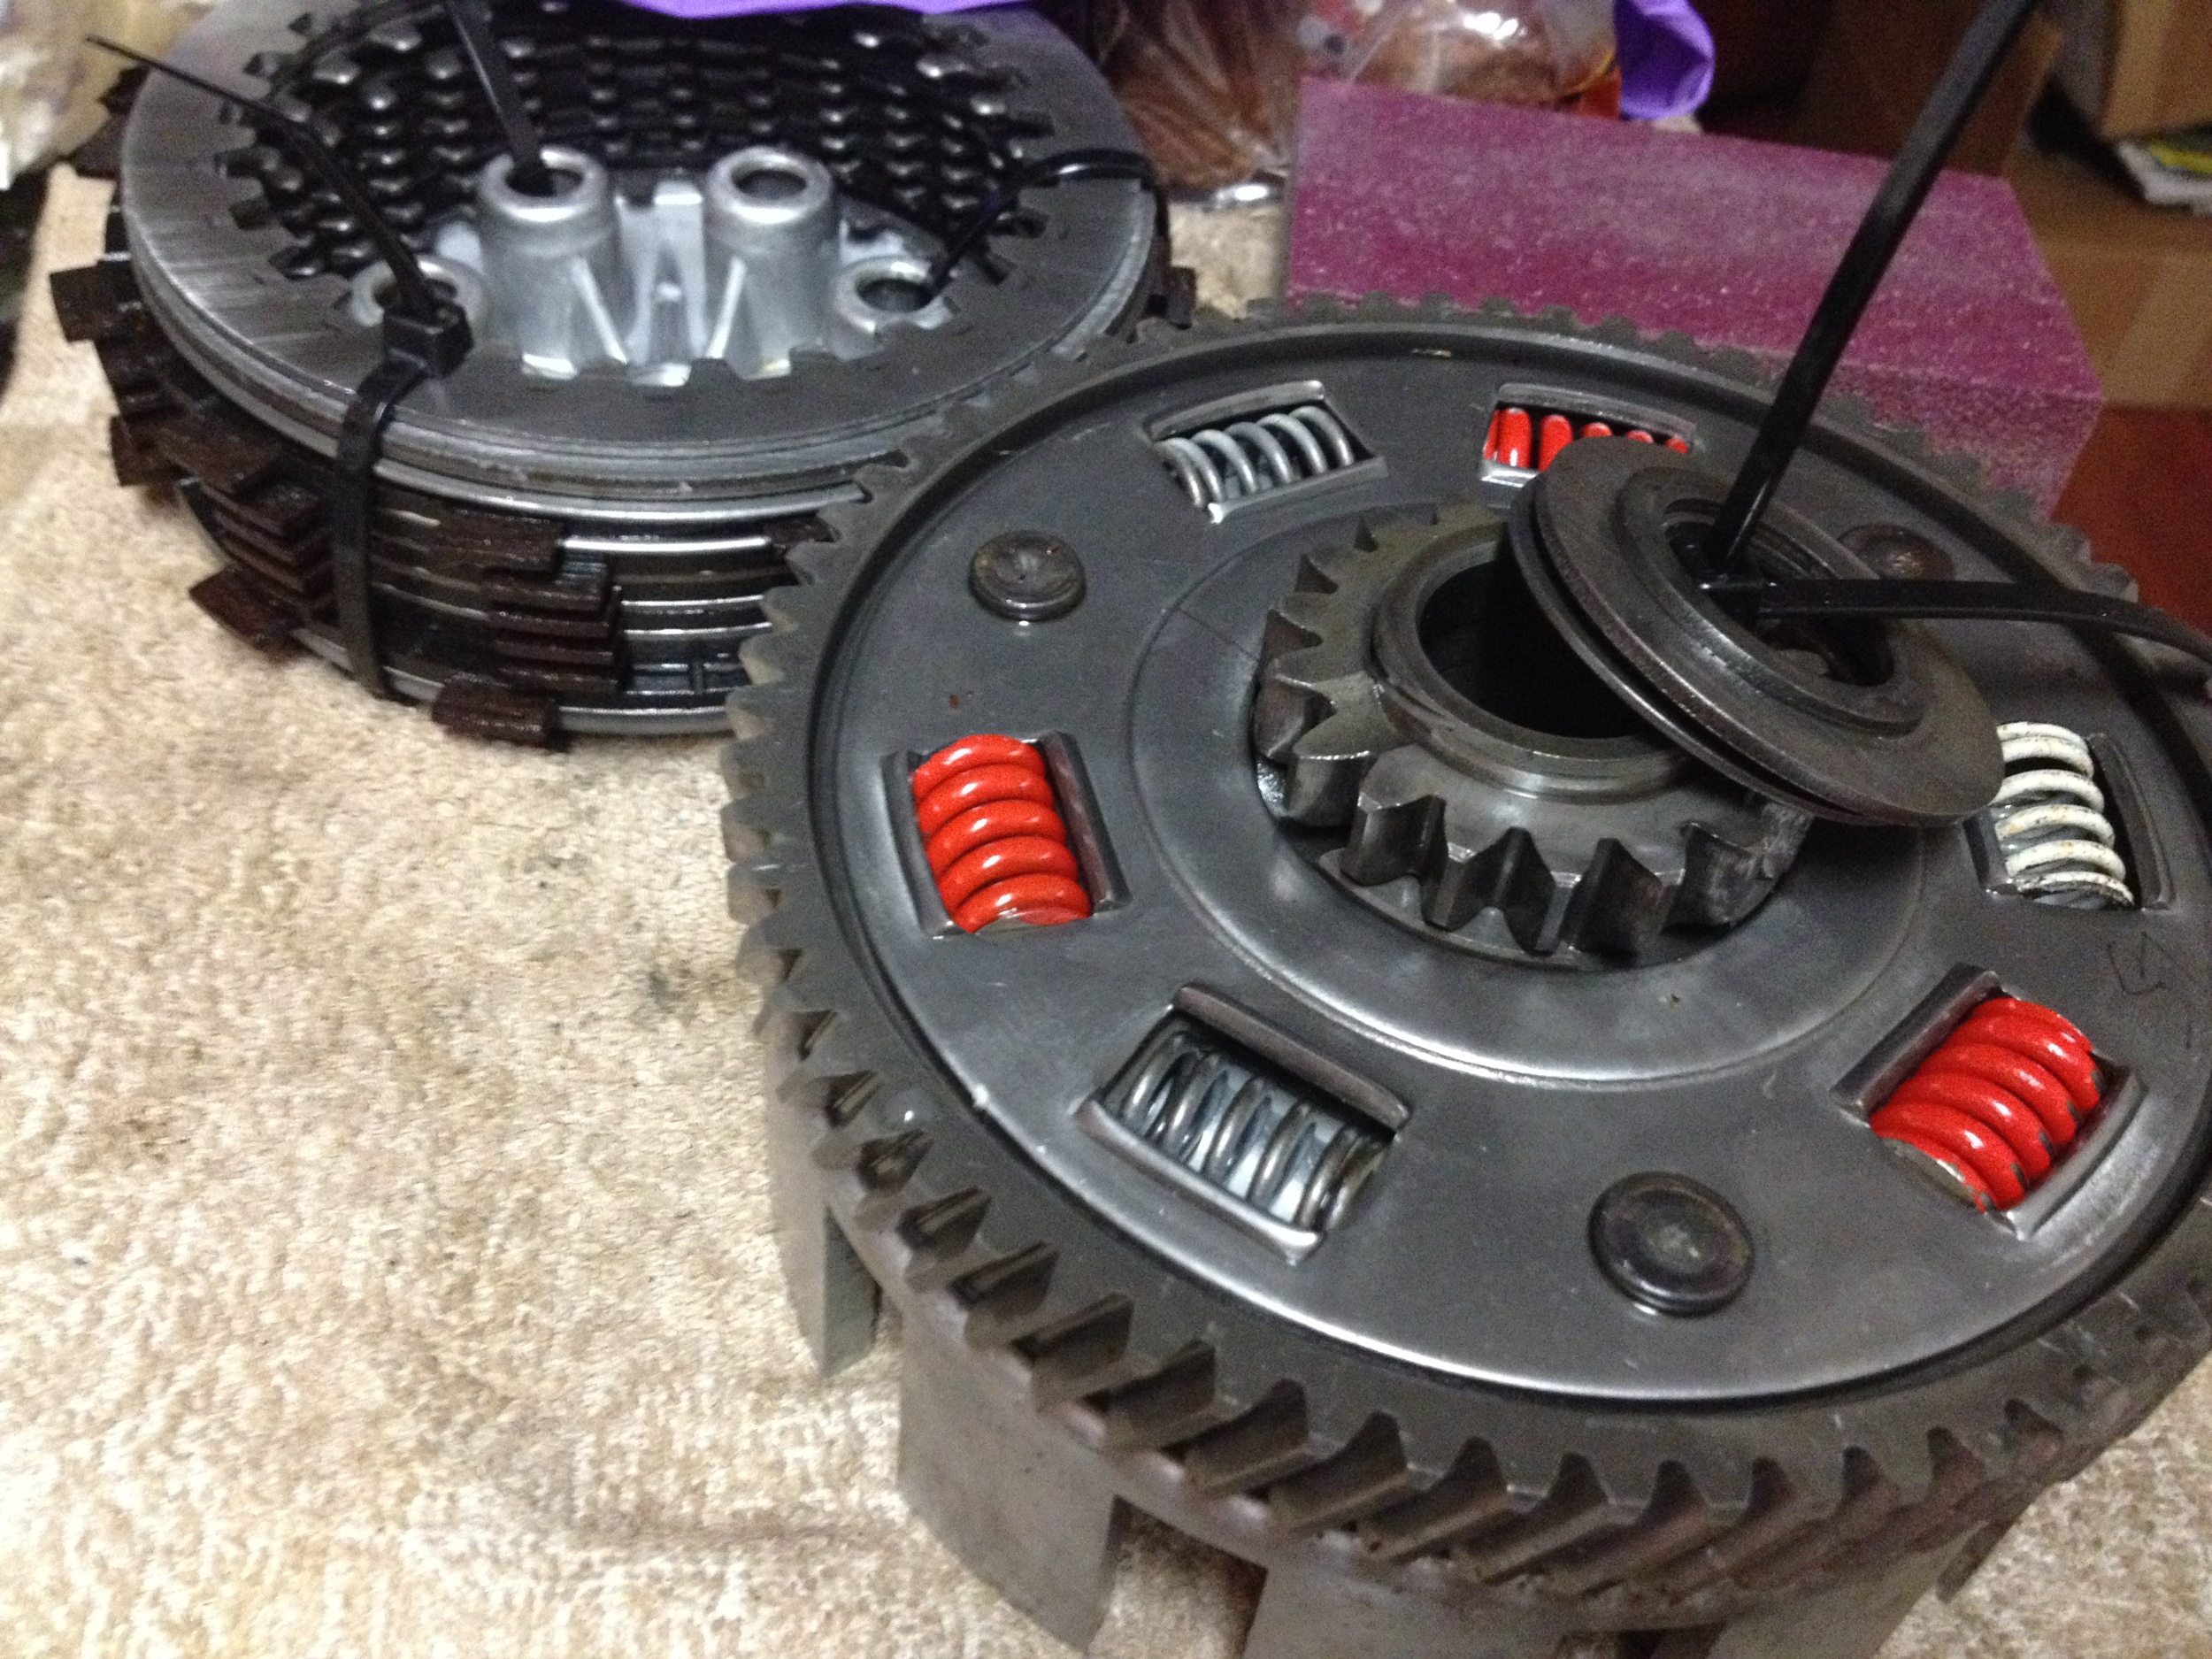 Clutch discs in background ziptied, clutch baskets/bearings in front